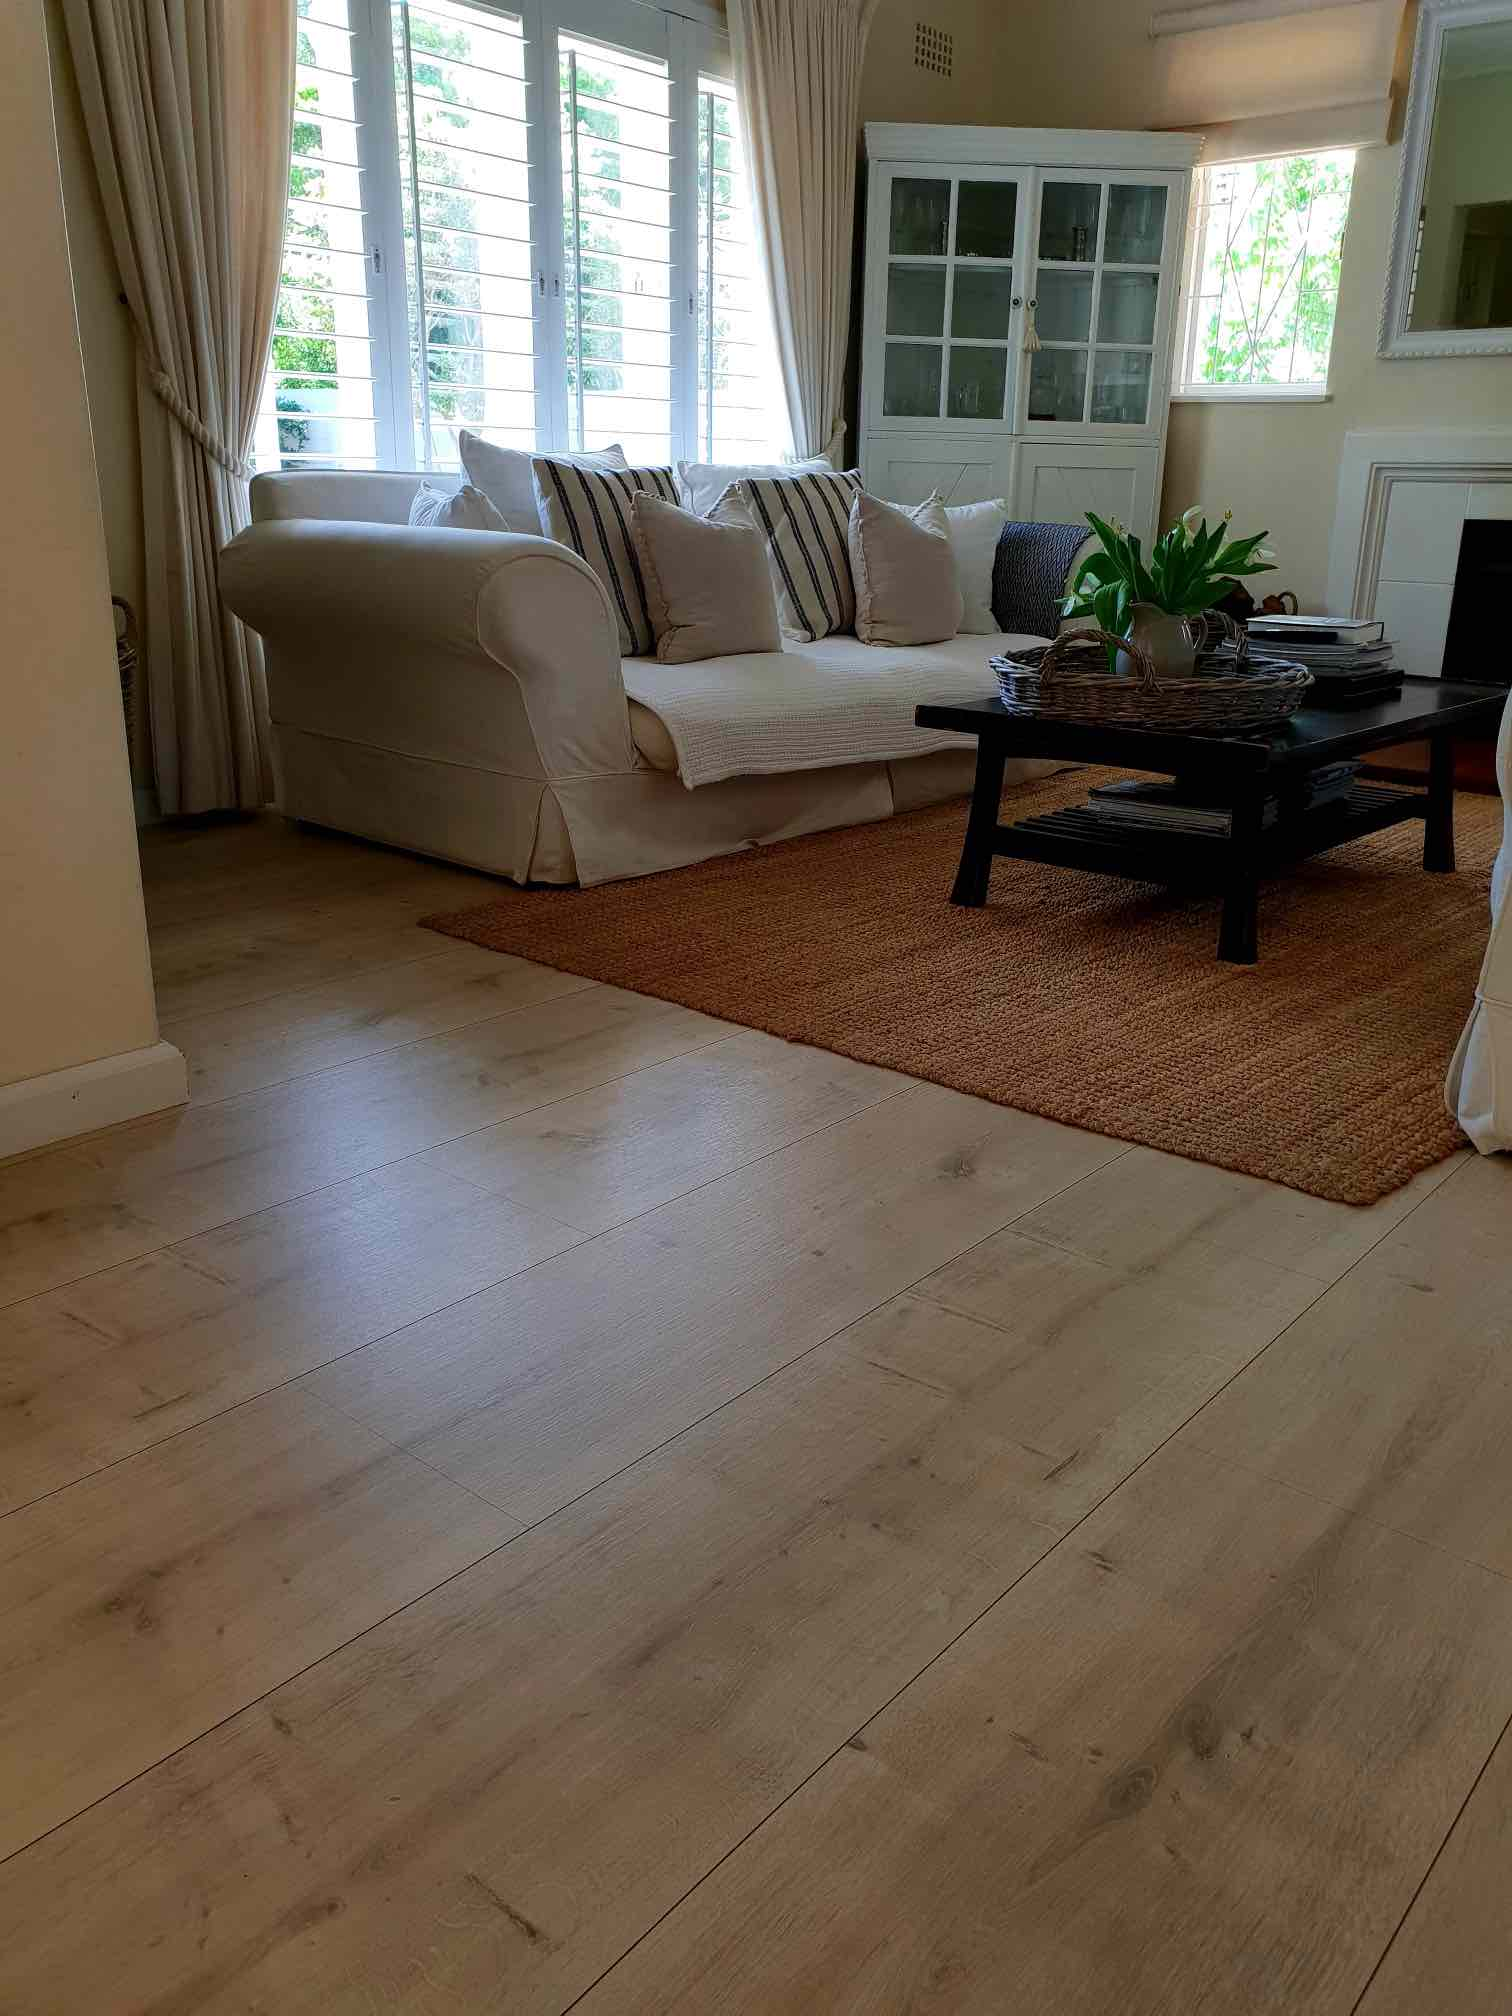 Laminate flooring - tlc flooring cape town